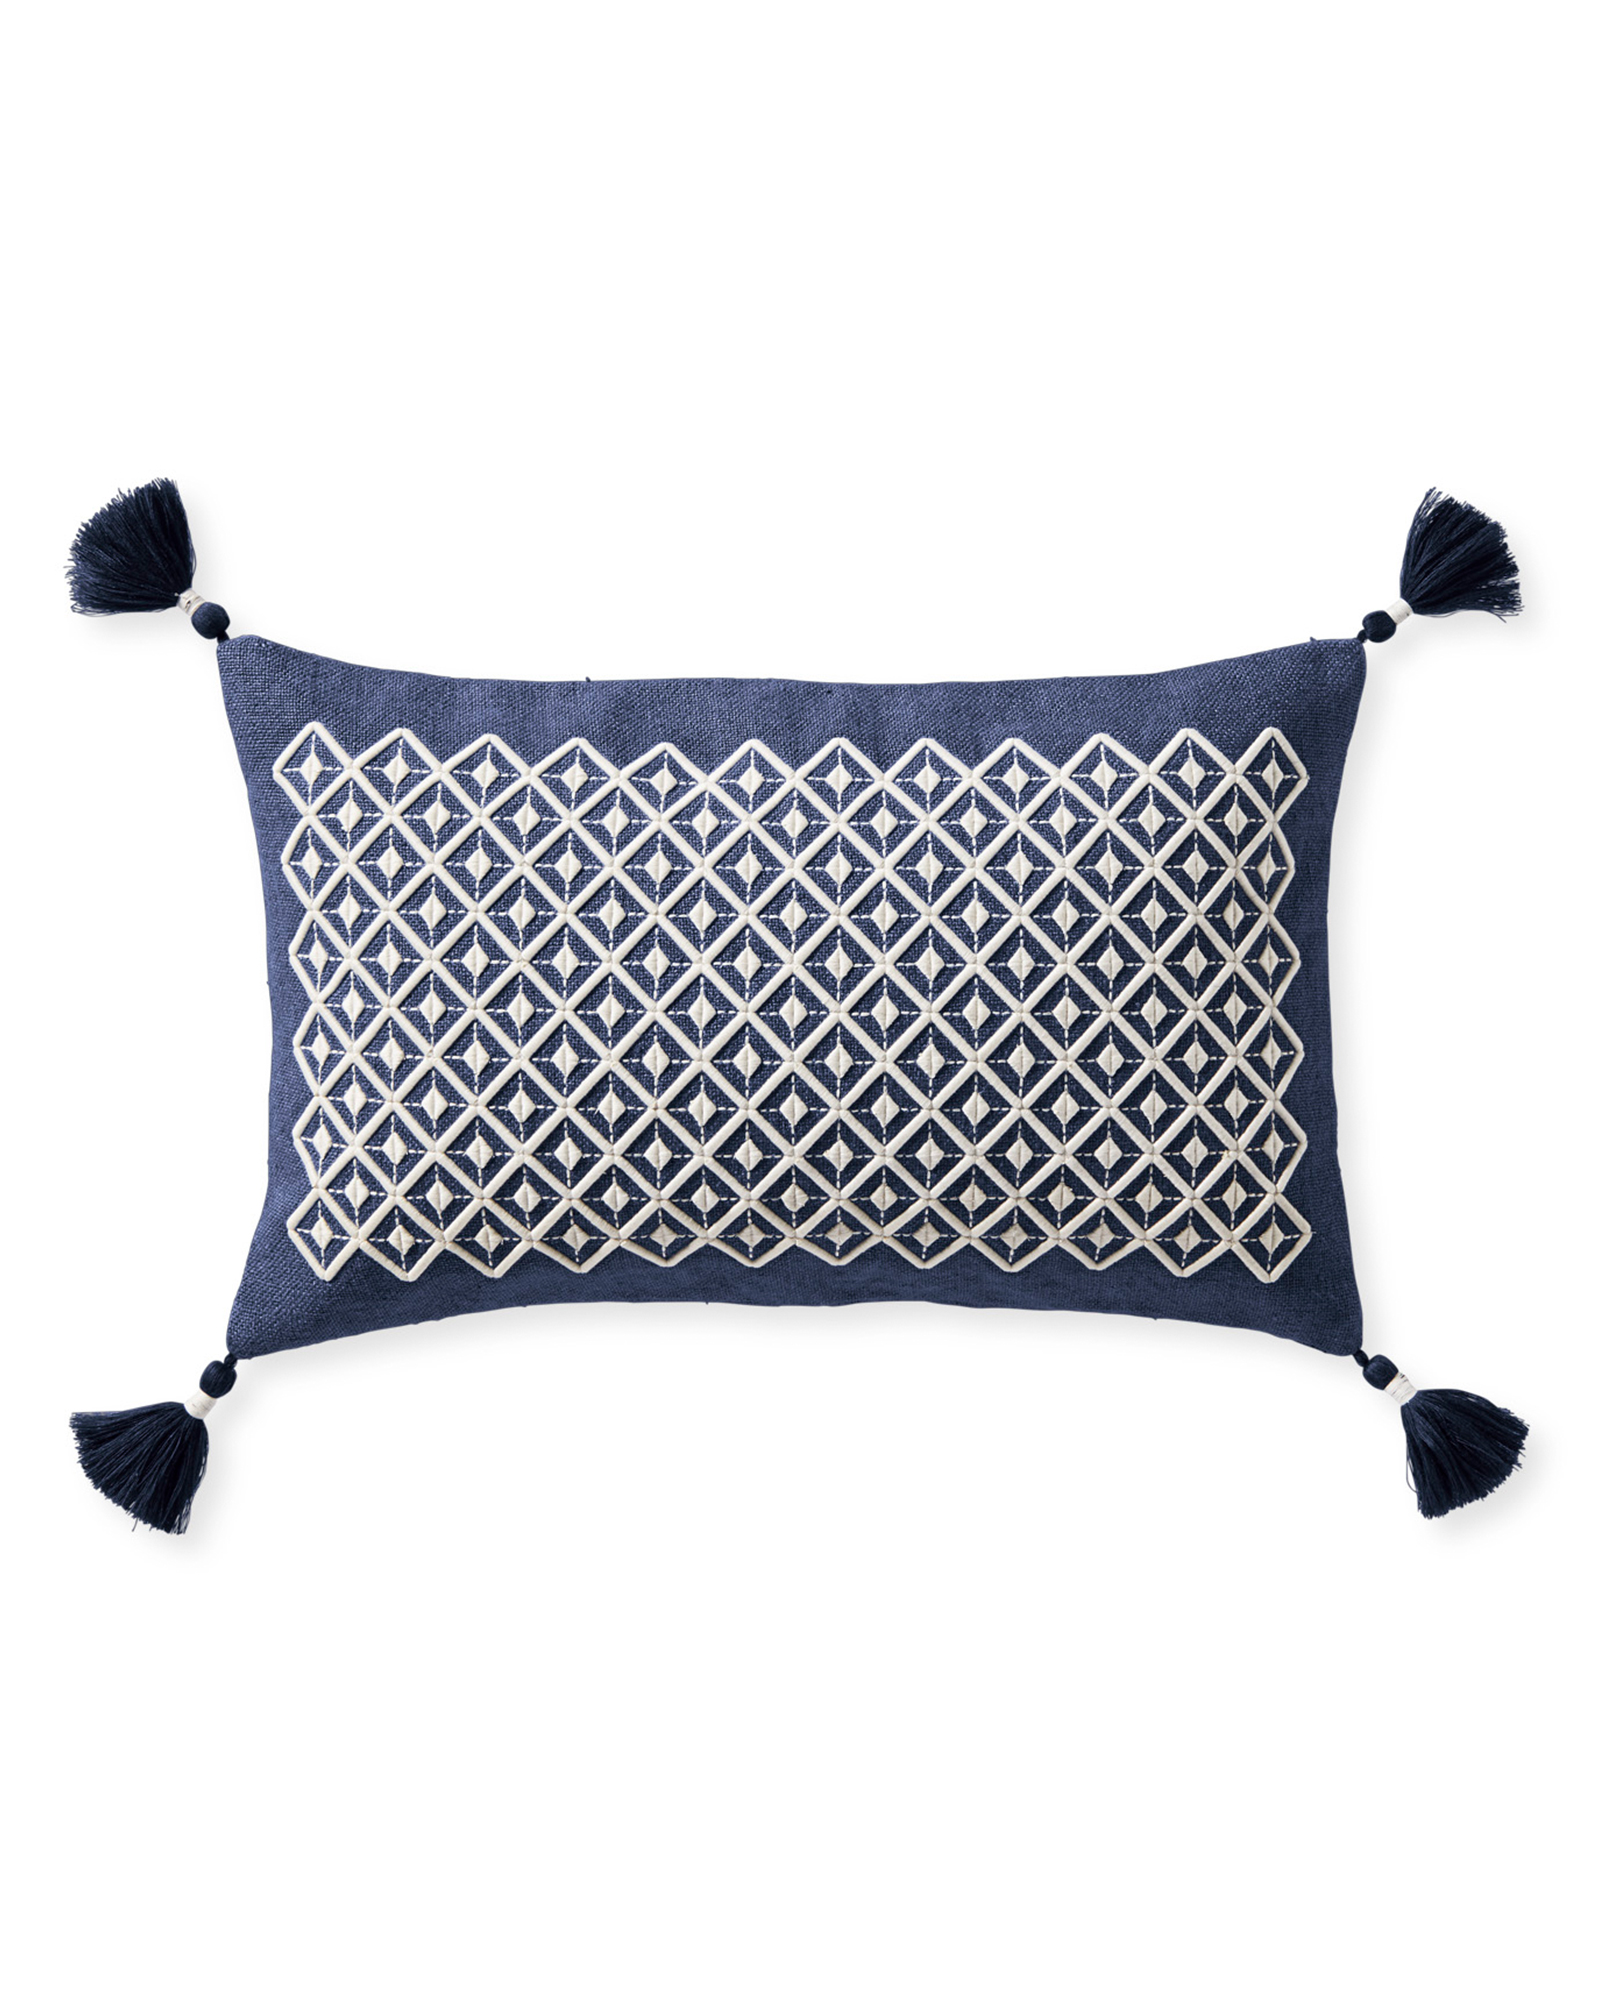 Frontera Pillow Cover, Navy